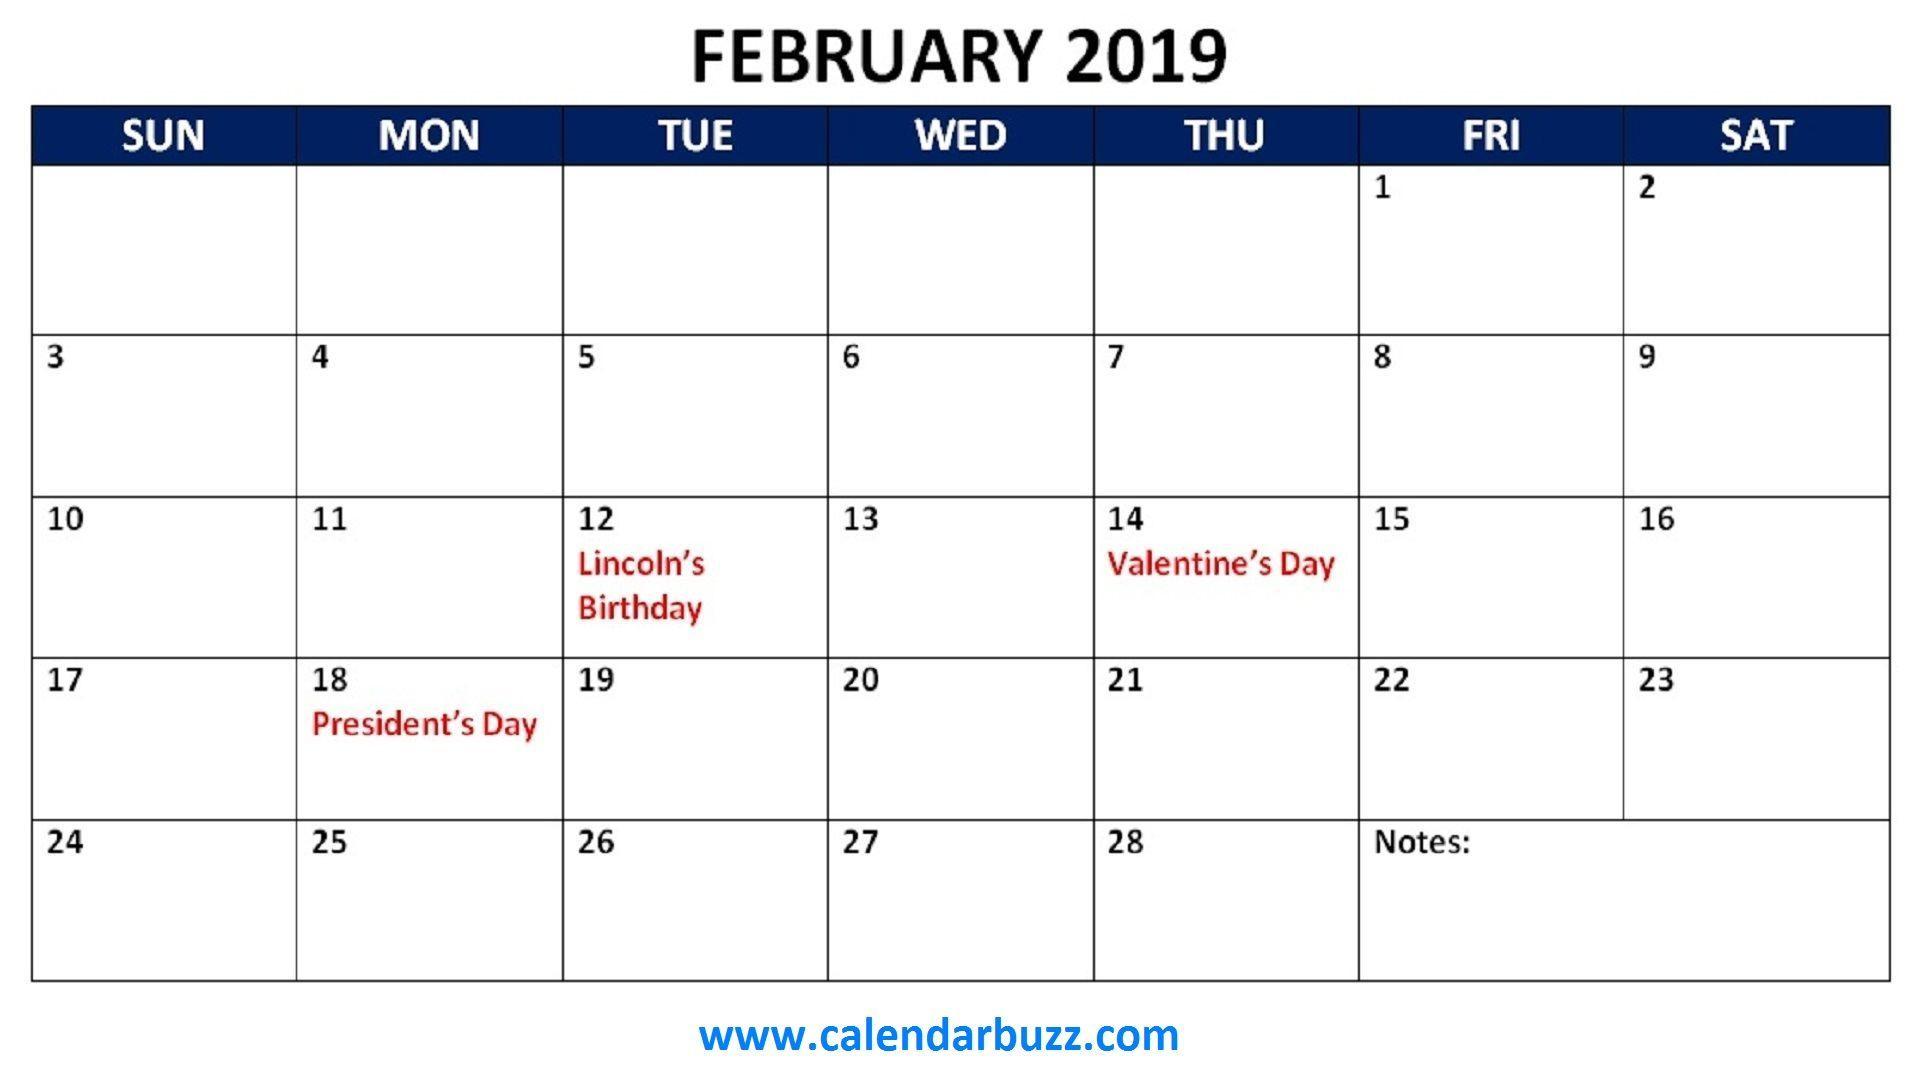 February 2019 Calendar Philippines With Holidays - Free Printable with Printable Template For Philippine Calendar